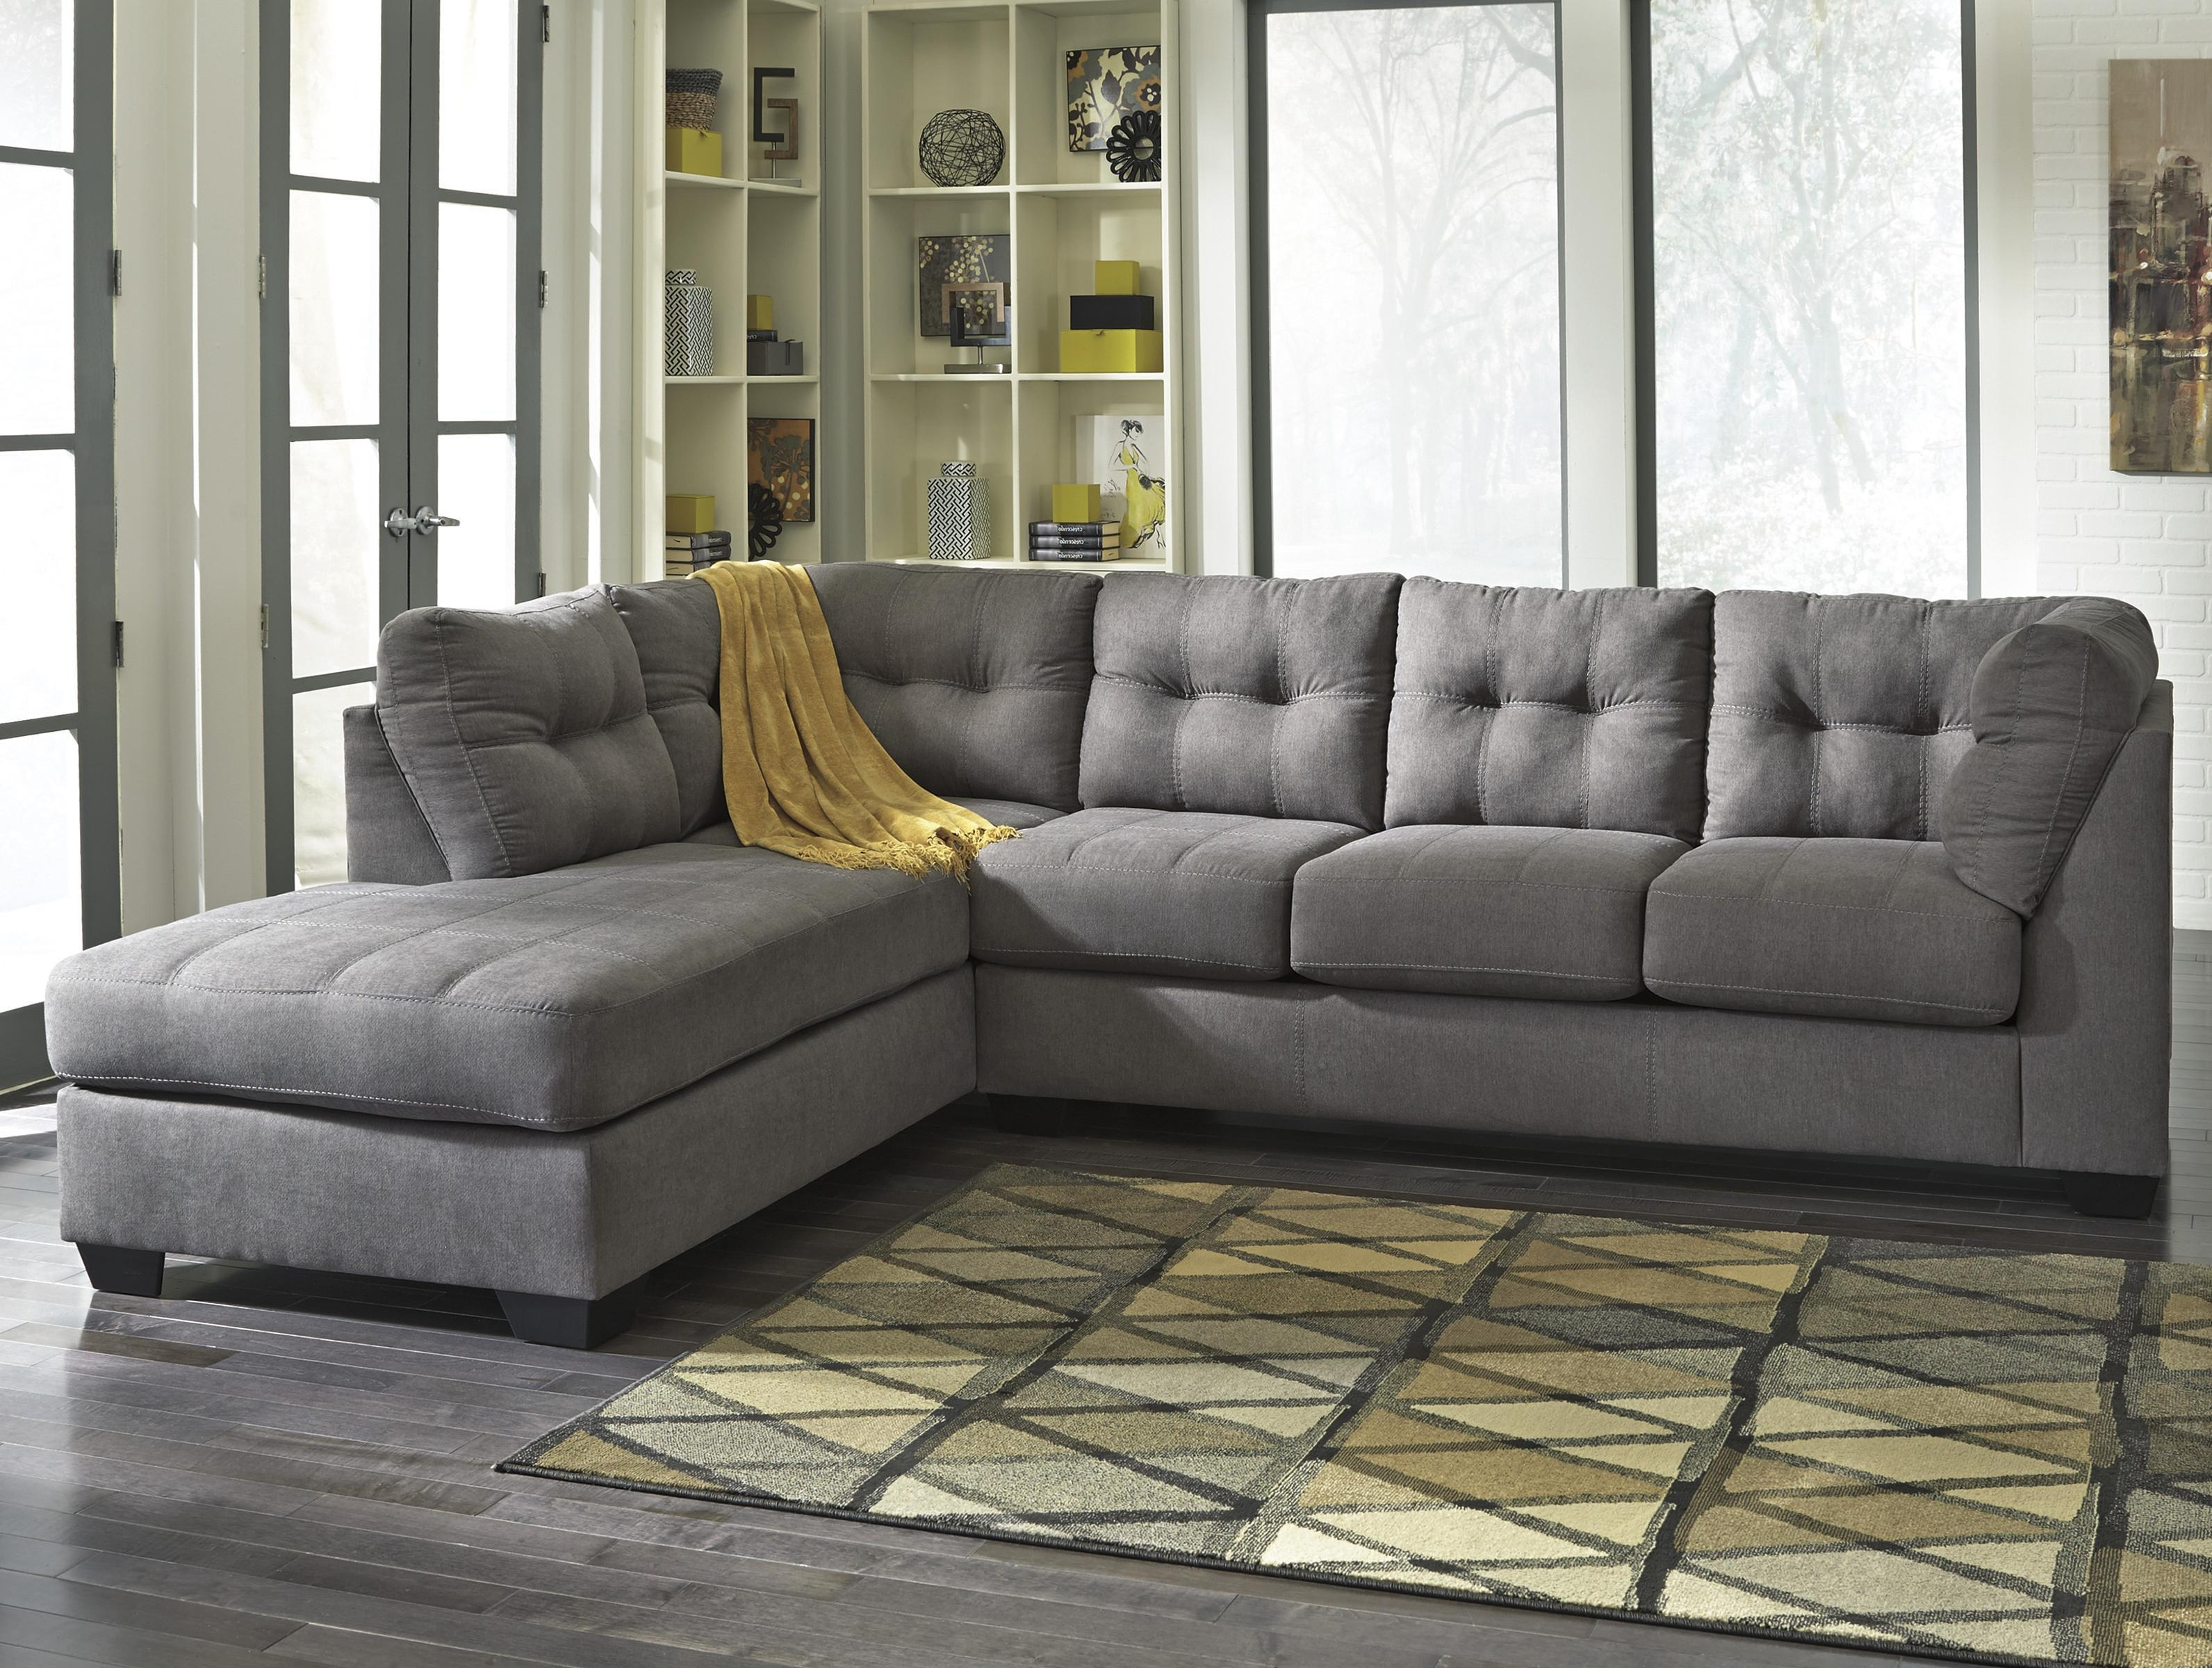 Sofas : Marvelous Small Sectional Sleeper Sofa 5 Piece Sectional With Small 2 Piece Sectional Sofas (View 7 of 23)